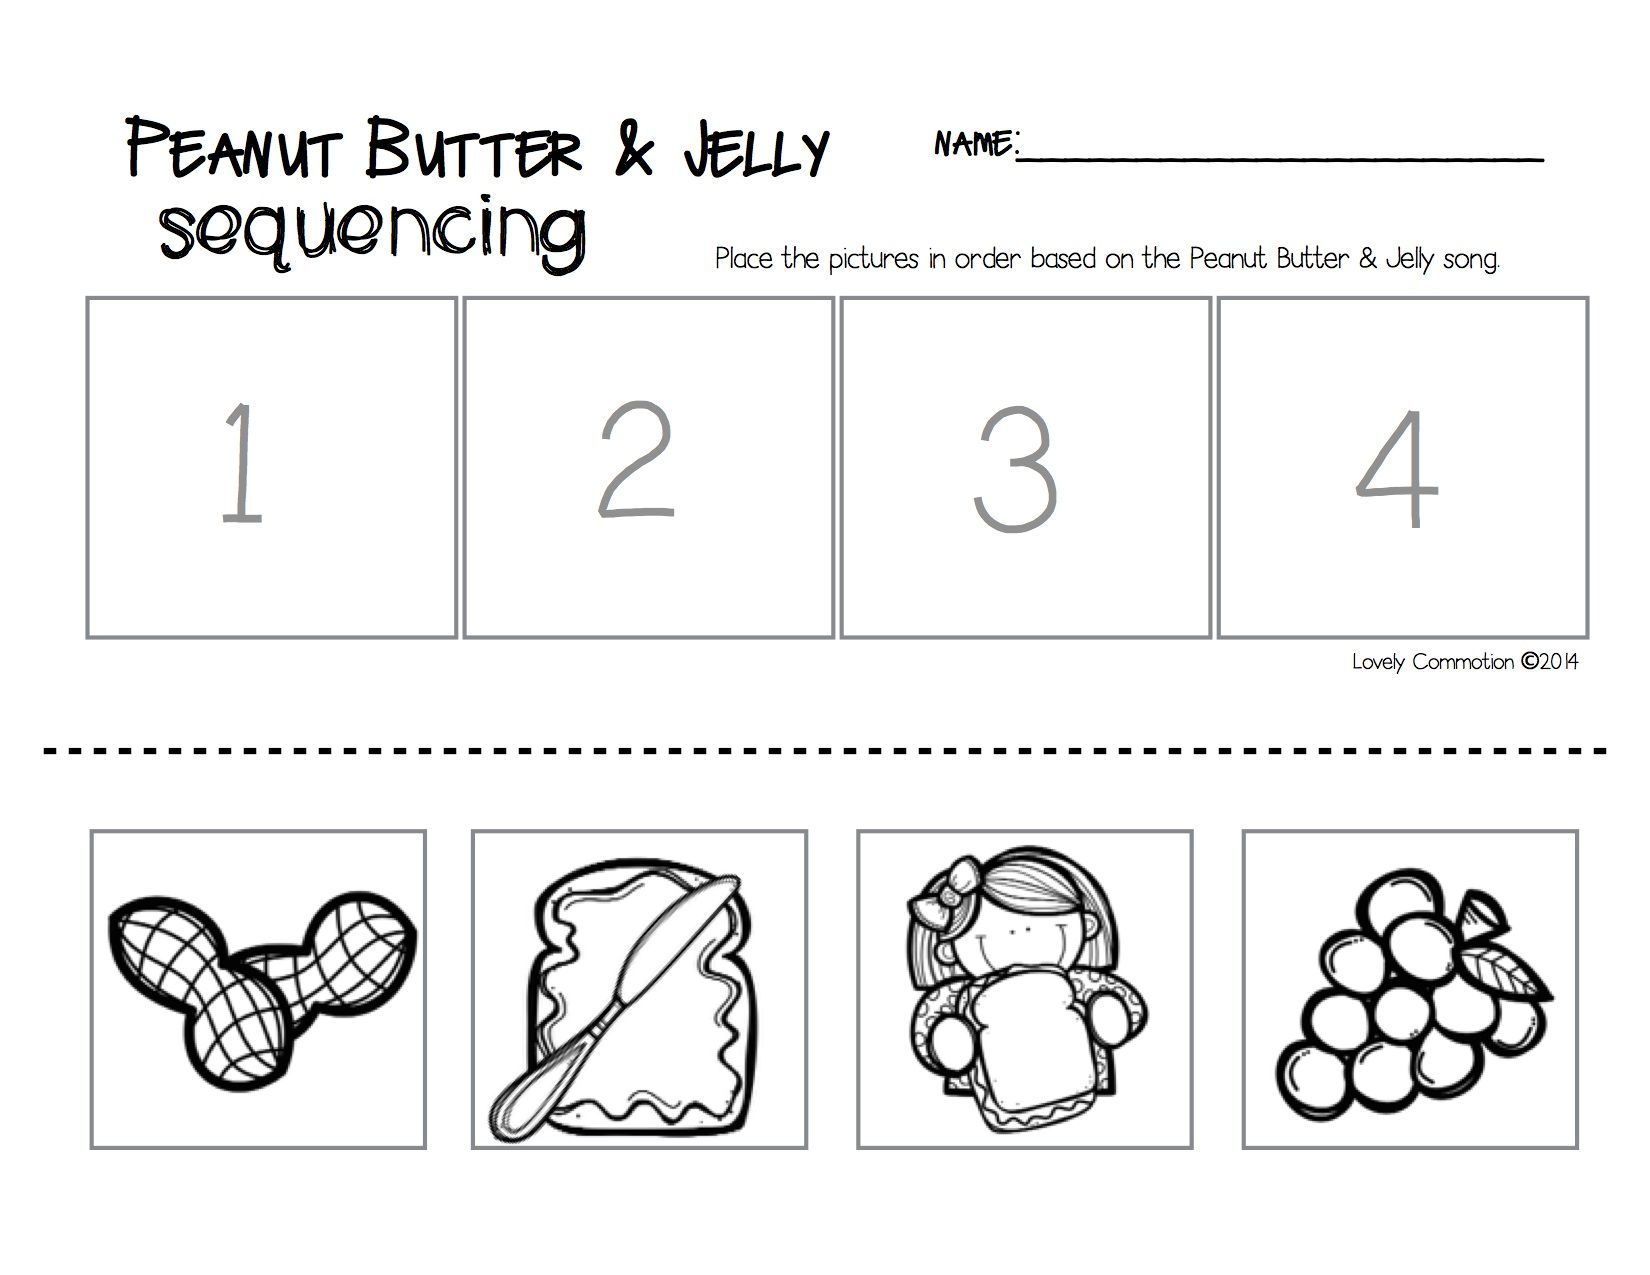 sequencing kindergarten worksheets Brandonbriceus – Sequencing Kindergarten Worksheets